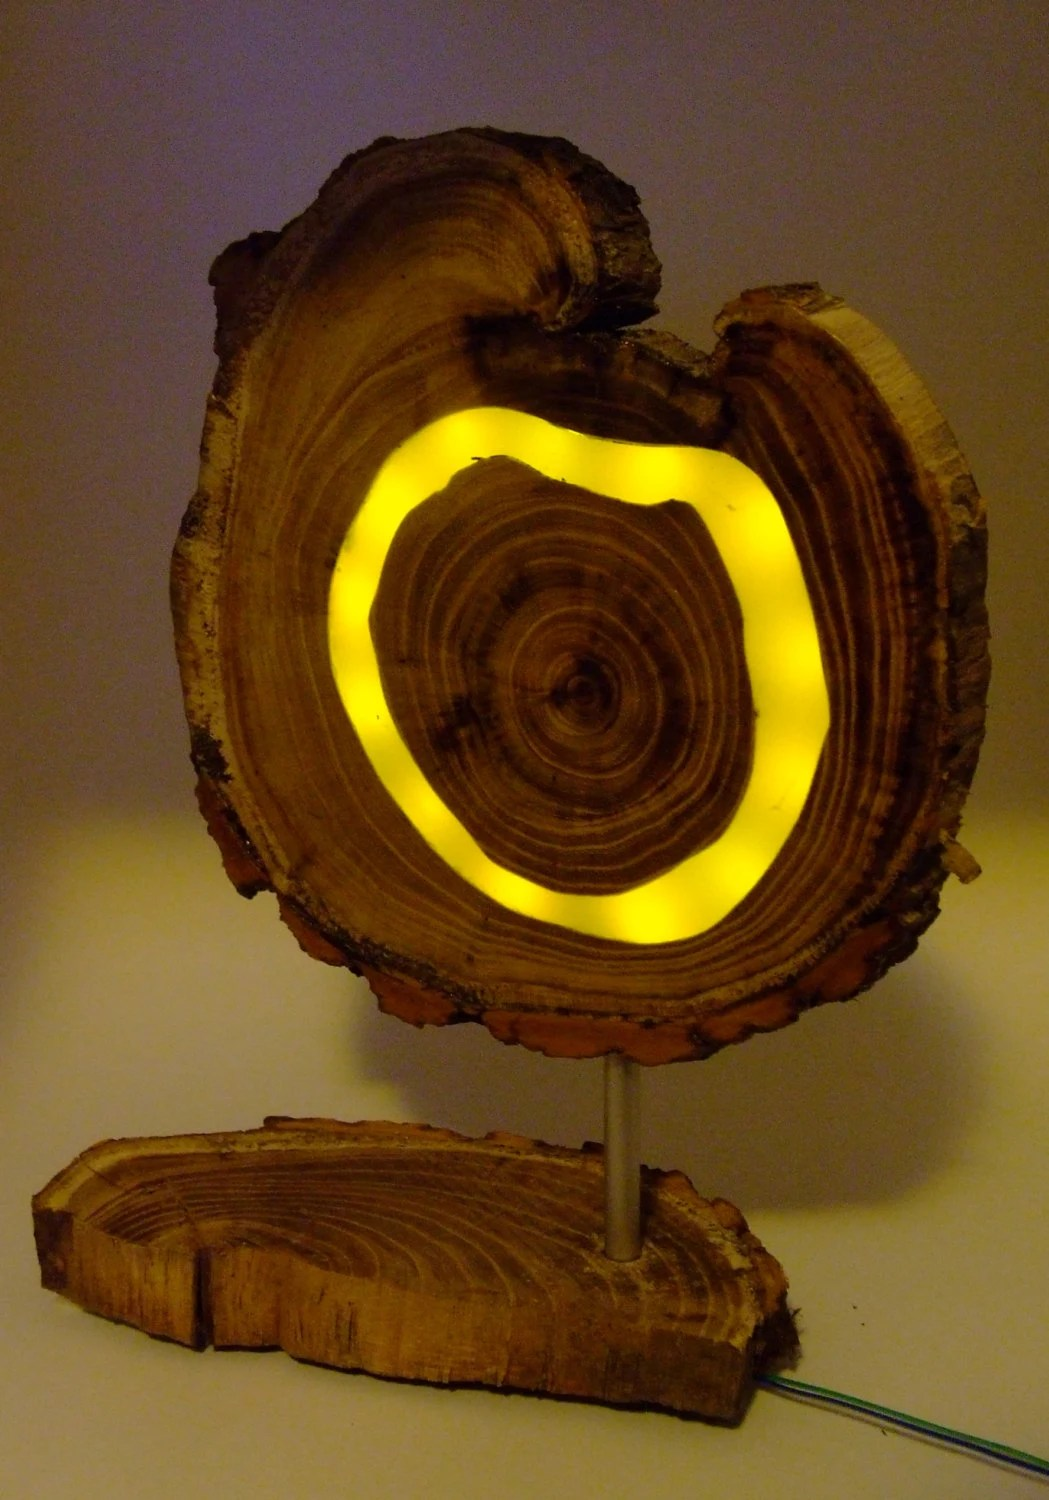 Wooden Yellow Led Lamp Acaciawood With Clear Epoxy Resin And